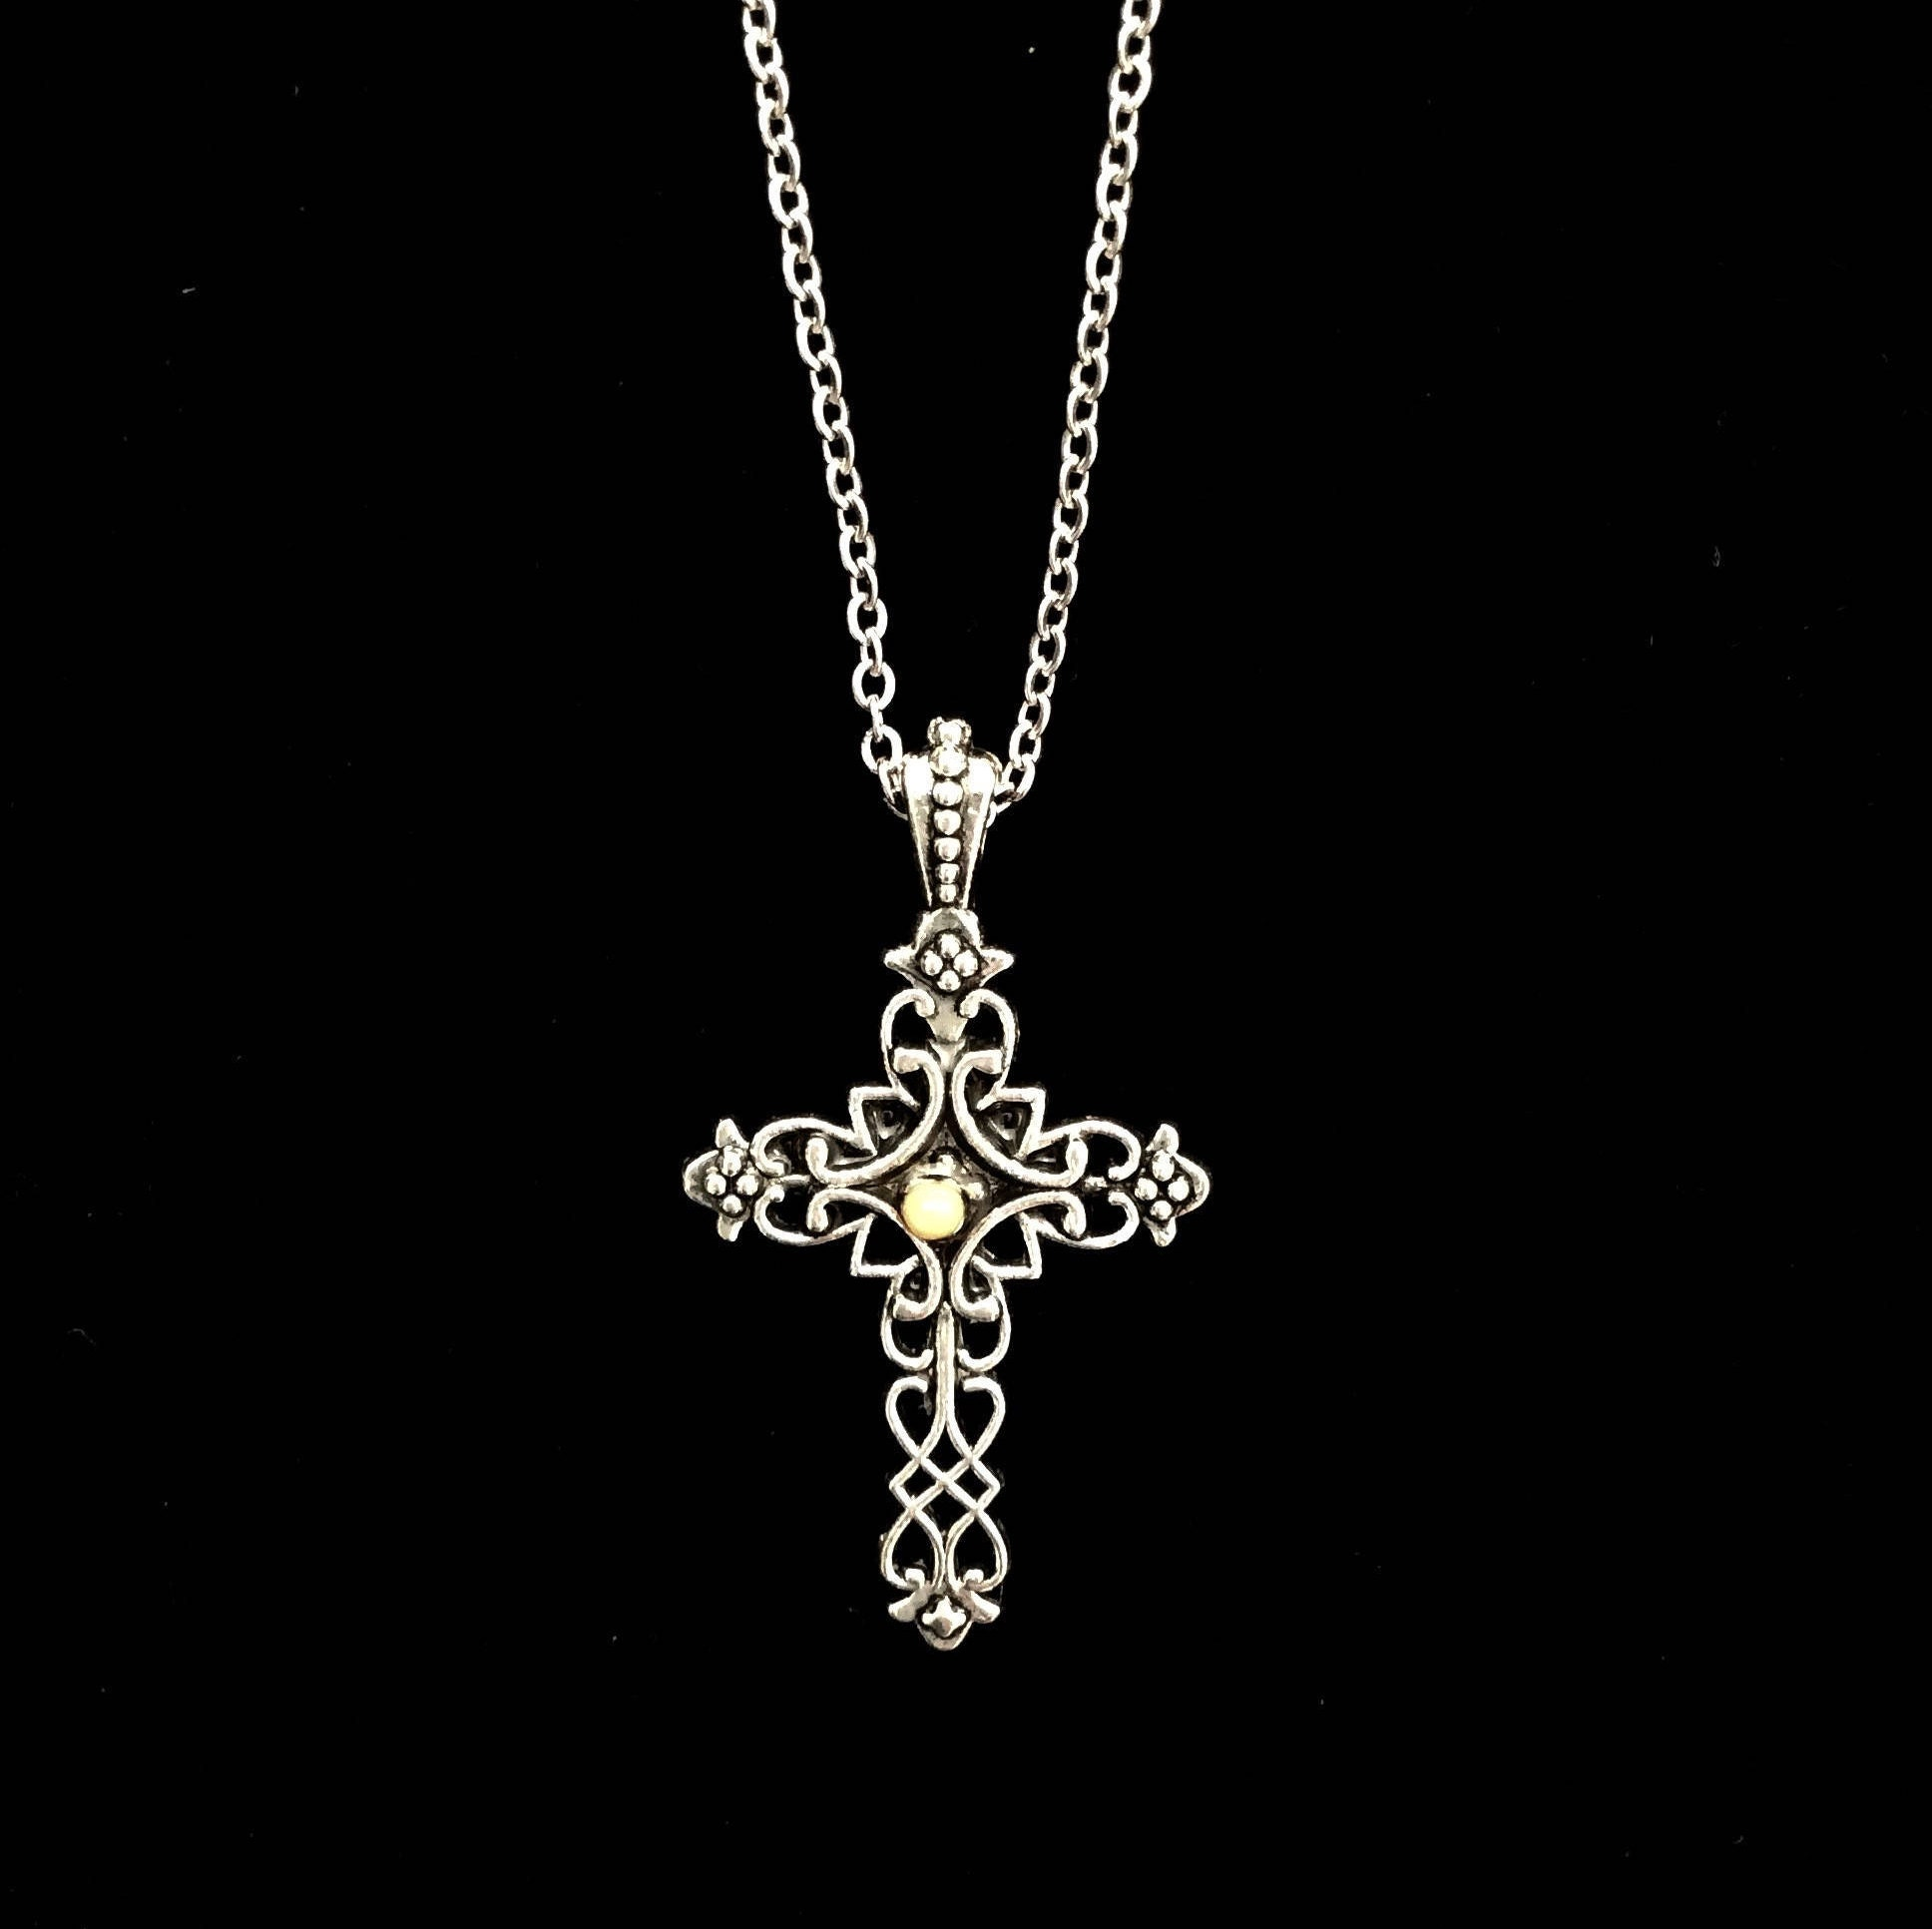 Faith of a mustard seed necklace antique silver filigree cross faith of a mustard seed necklace antique silver filigree cross necklace with a mustard seed and a petite silver stainless steel chain biocorpaavc Images